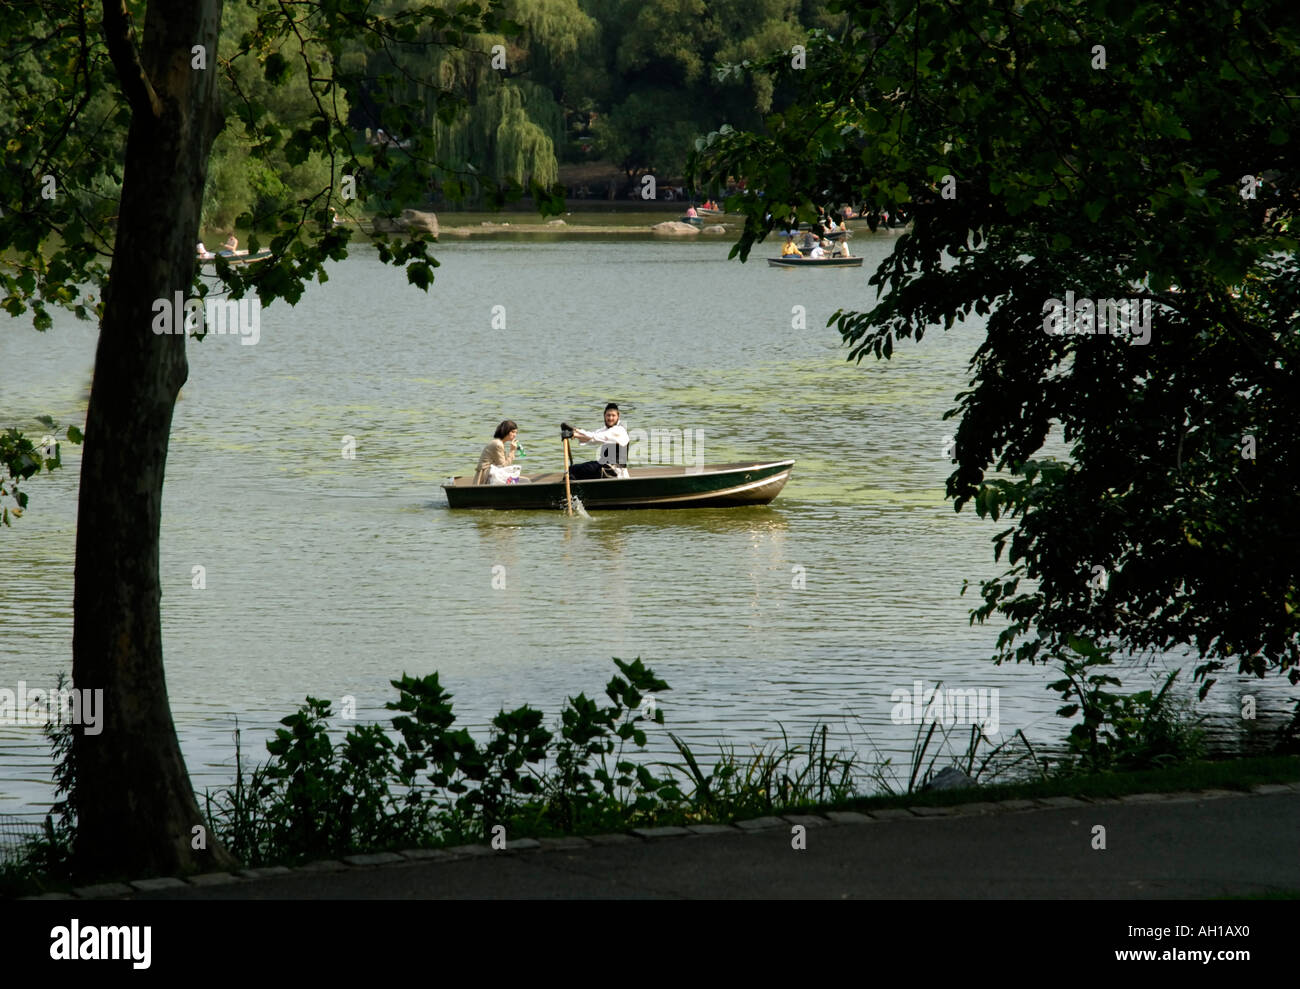 Young Hasidic Jewish couple in rental boat on Central Park Lake, New York City.  The man is rowing the boat. - Stock Image